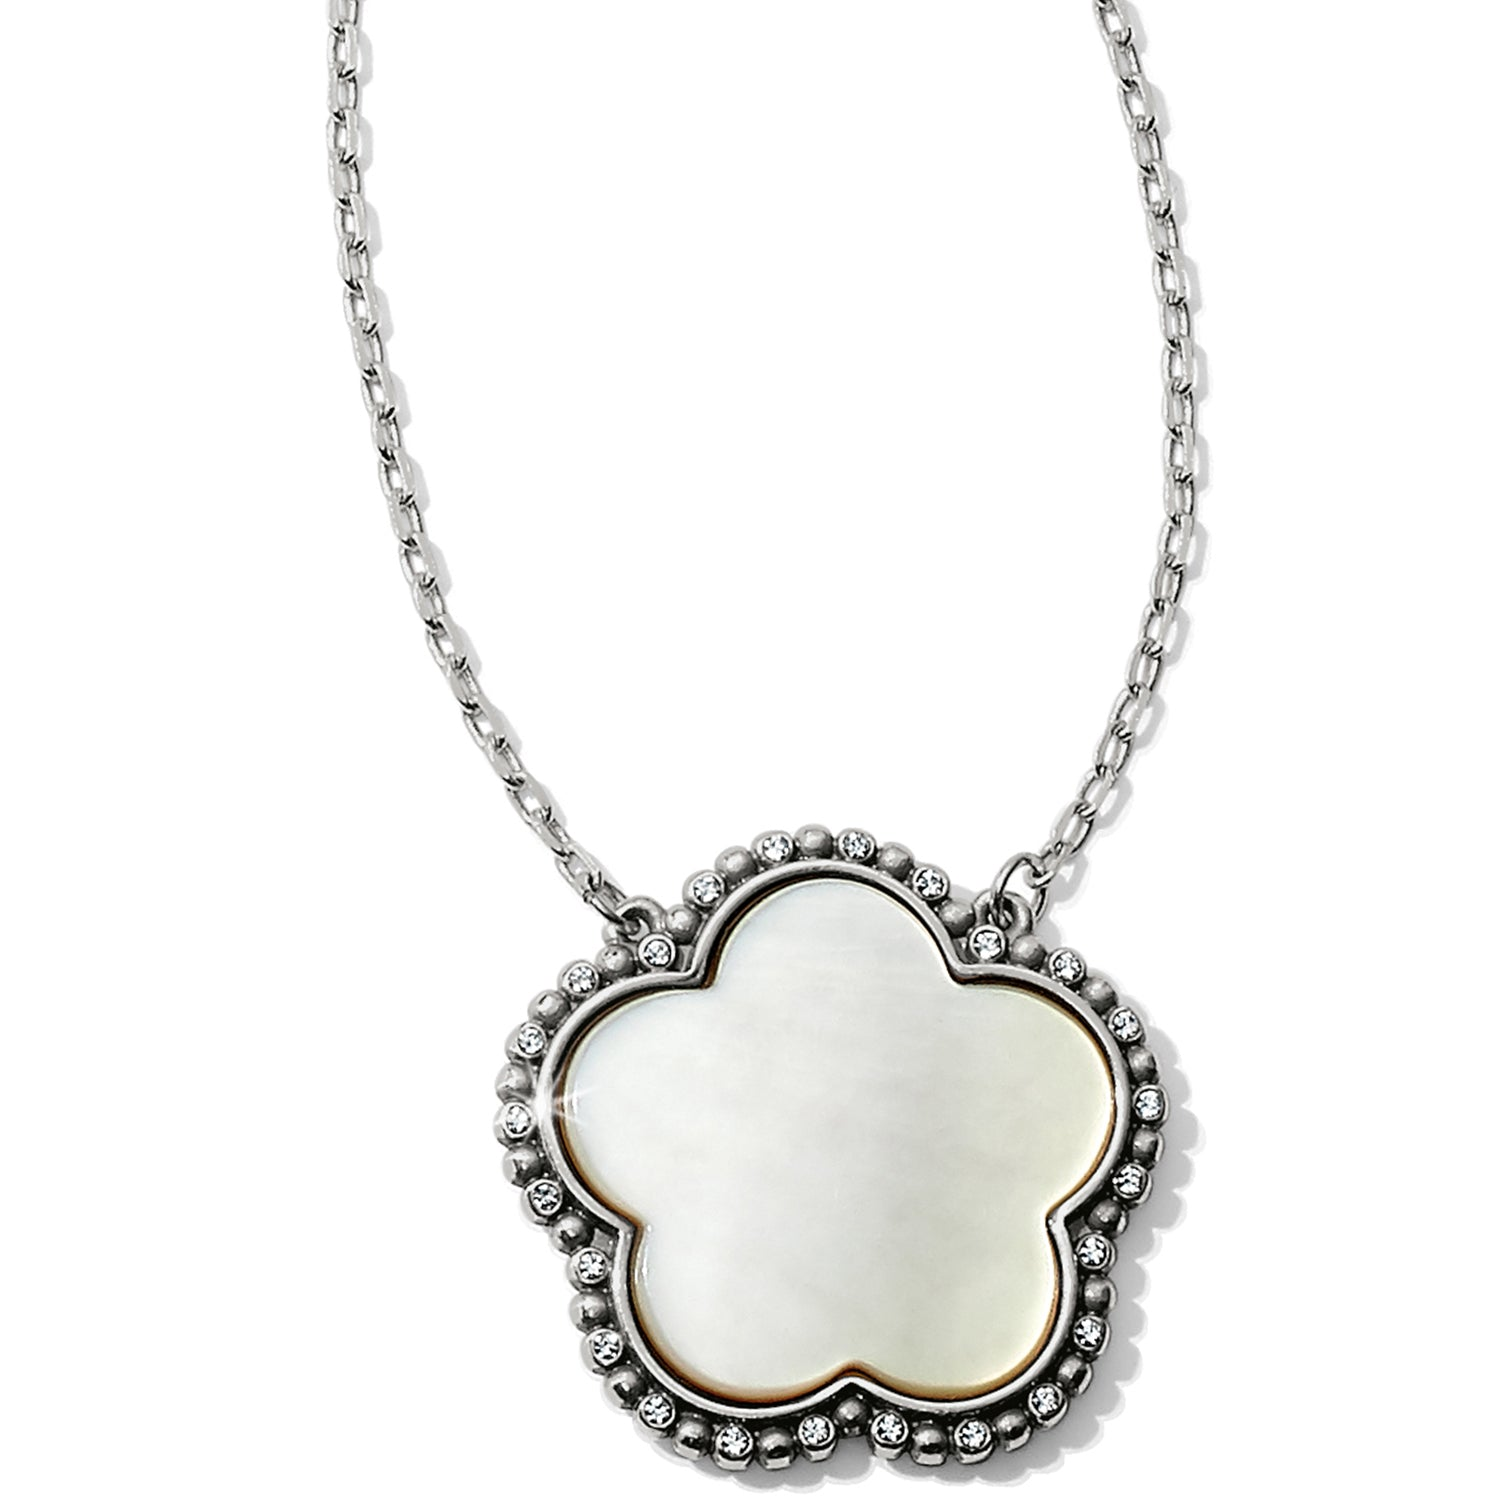 "Mother of Pearl is showcased in this stylized flower, with its natural luminescence adding to its unique beauty.  Closure: Lobster Claw Length: 18"" - 22"" Adjustable Pendant Drop: 1"" Finish: Silver plated Stones: Mother Of Pearl"